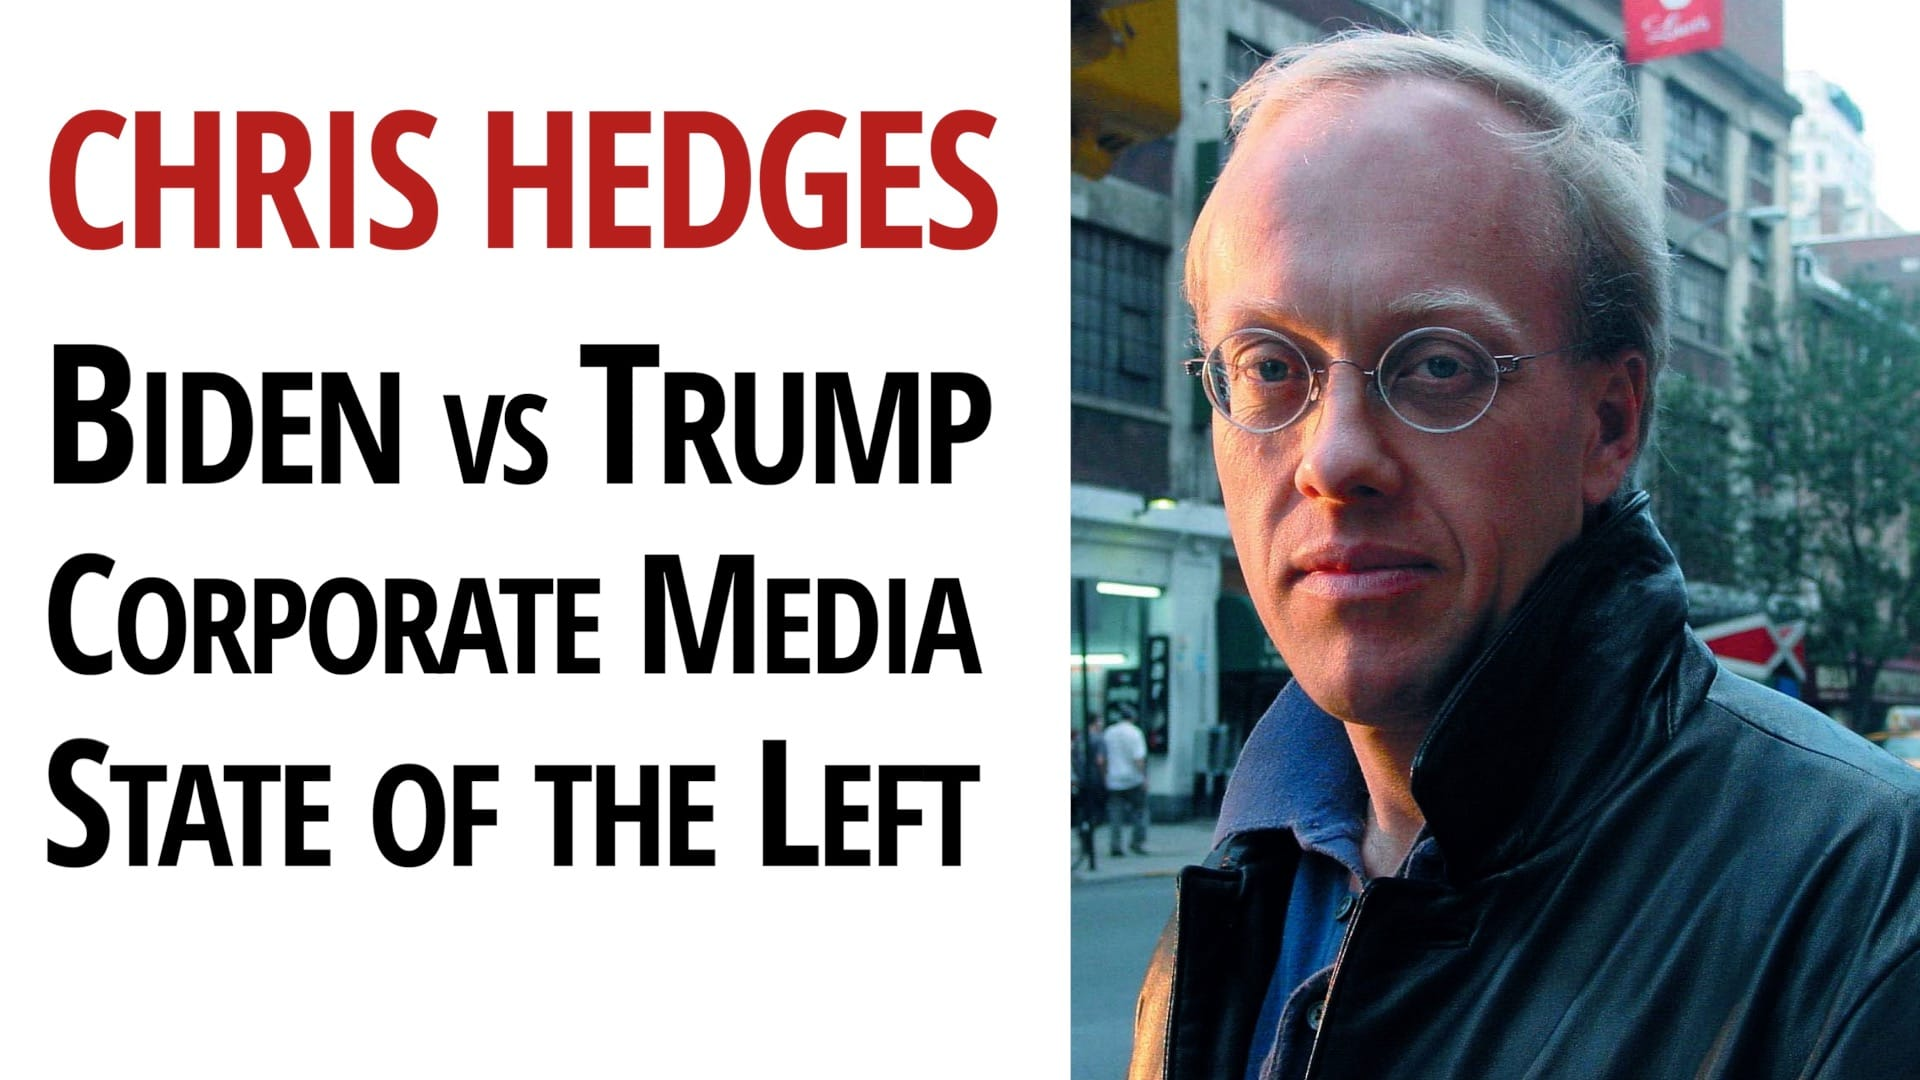 chris hedges biden trump assange